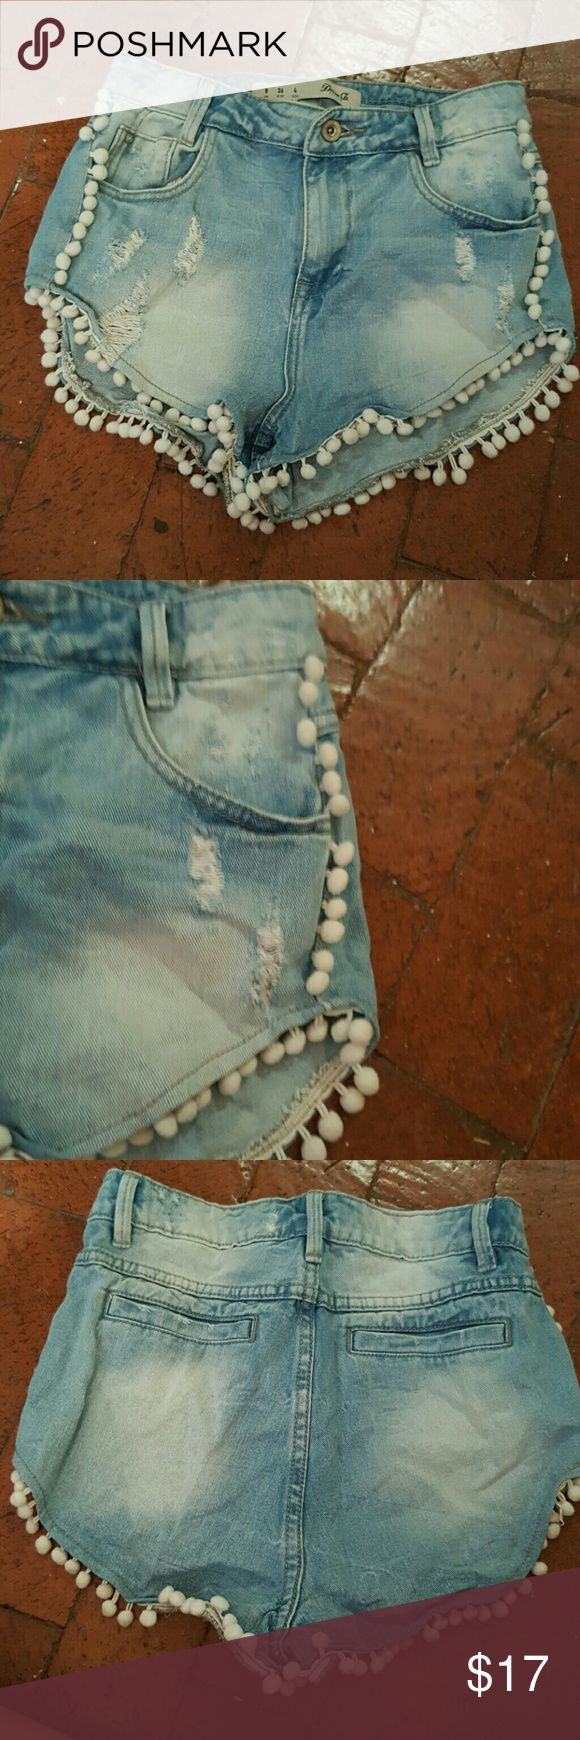 Pom Pom Jean Shorts Size 4 jean shorts with whit pom pom embellishments and a bit of distress. Real pockets Great condition, worn once 100% cotton Shorts Jean Shorts